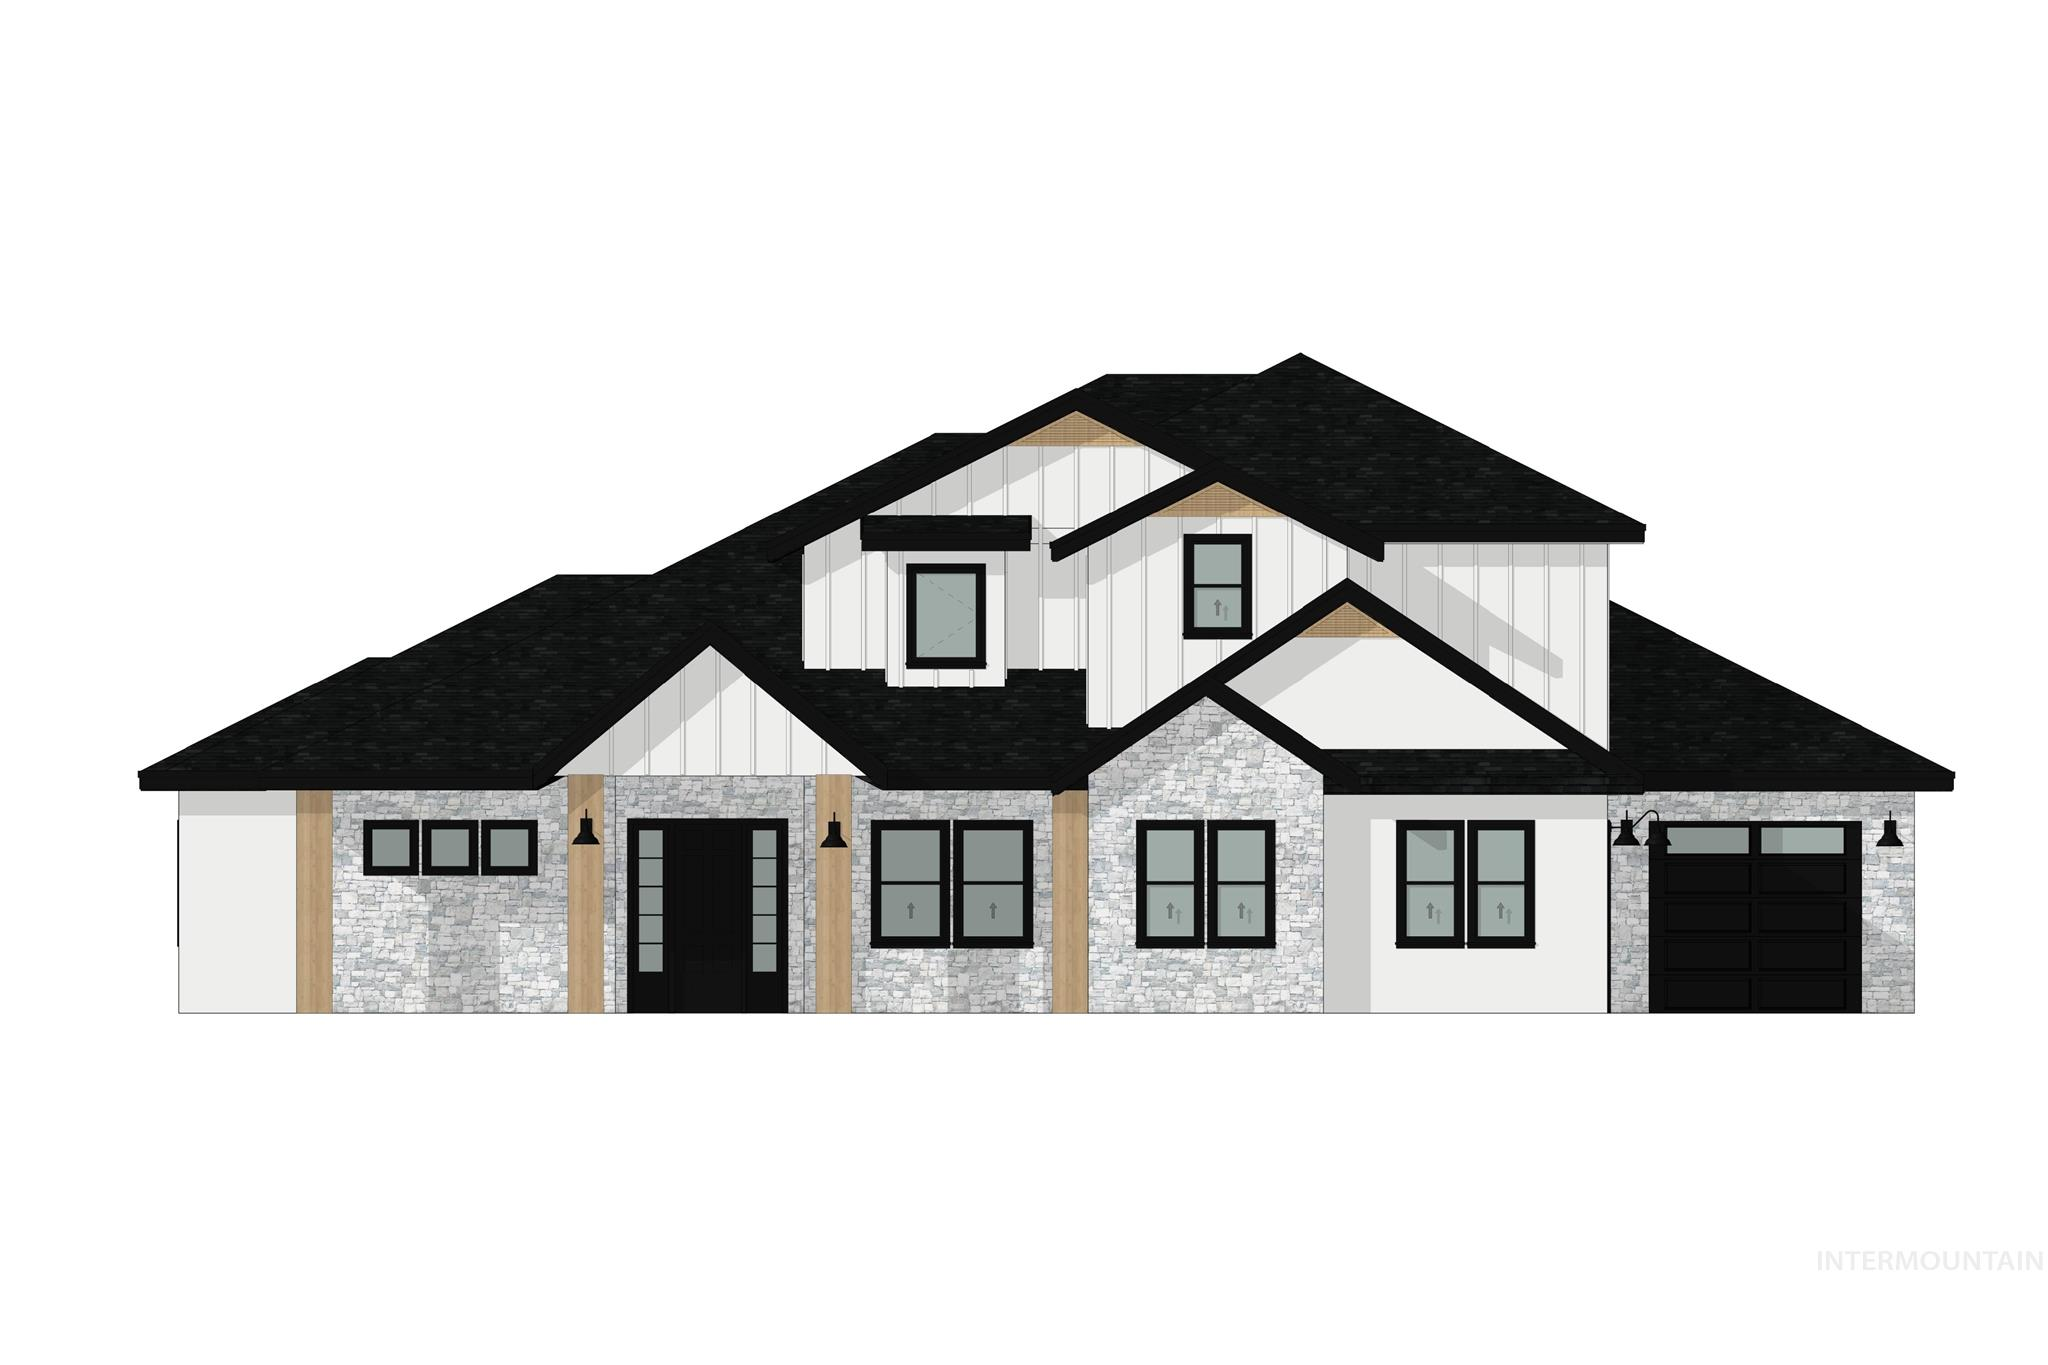 """Presenting the """"Caloy"""" by award winning home builder, Maddyn Homes. Ideal location in estate subdivision East Ridge and close to new community park and...this home is stunning! Custom touches and high end finishes throughout. 4900 total sq ft includes 1613 sq ft unfinished basement. This high performance home has too many energy details to list. Premier home warranty. Photos similar. - Jade Enzler, Main: 208-484-9831, Silvercreek Realty Group, Main: 208-377-0422,"""